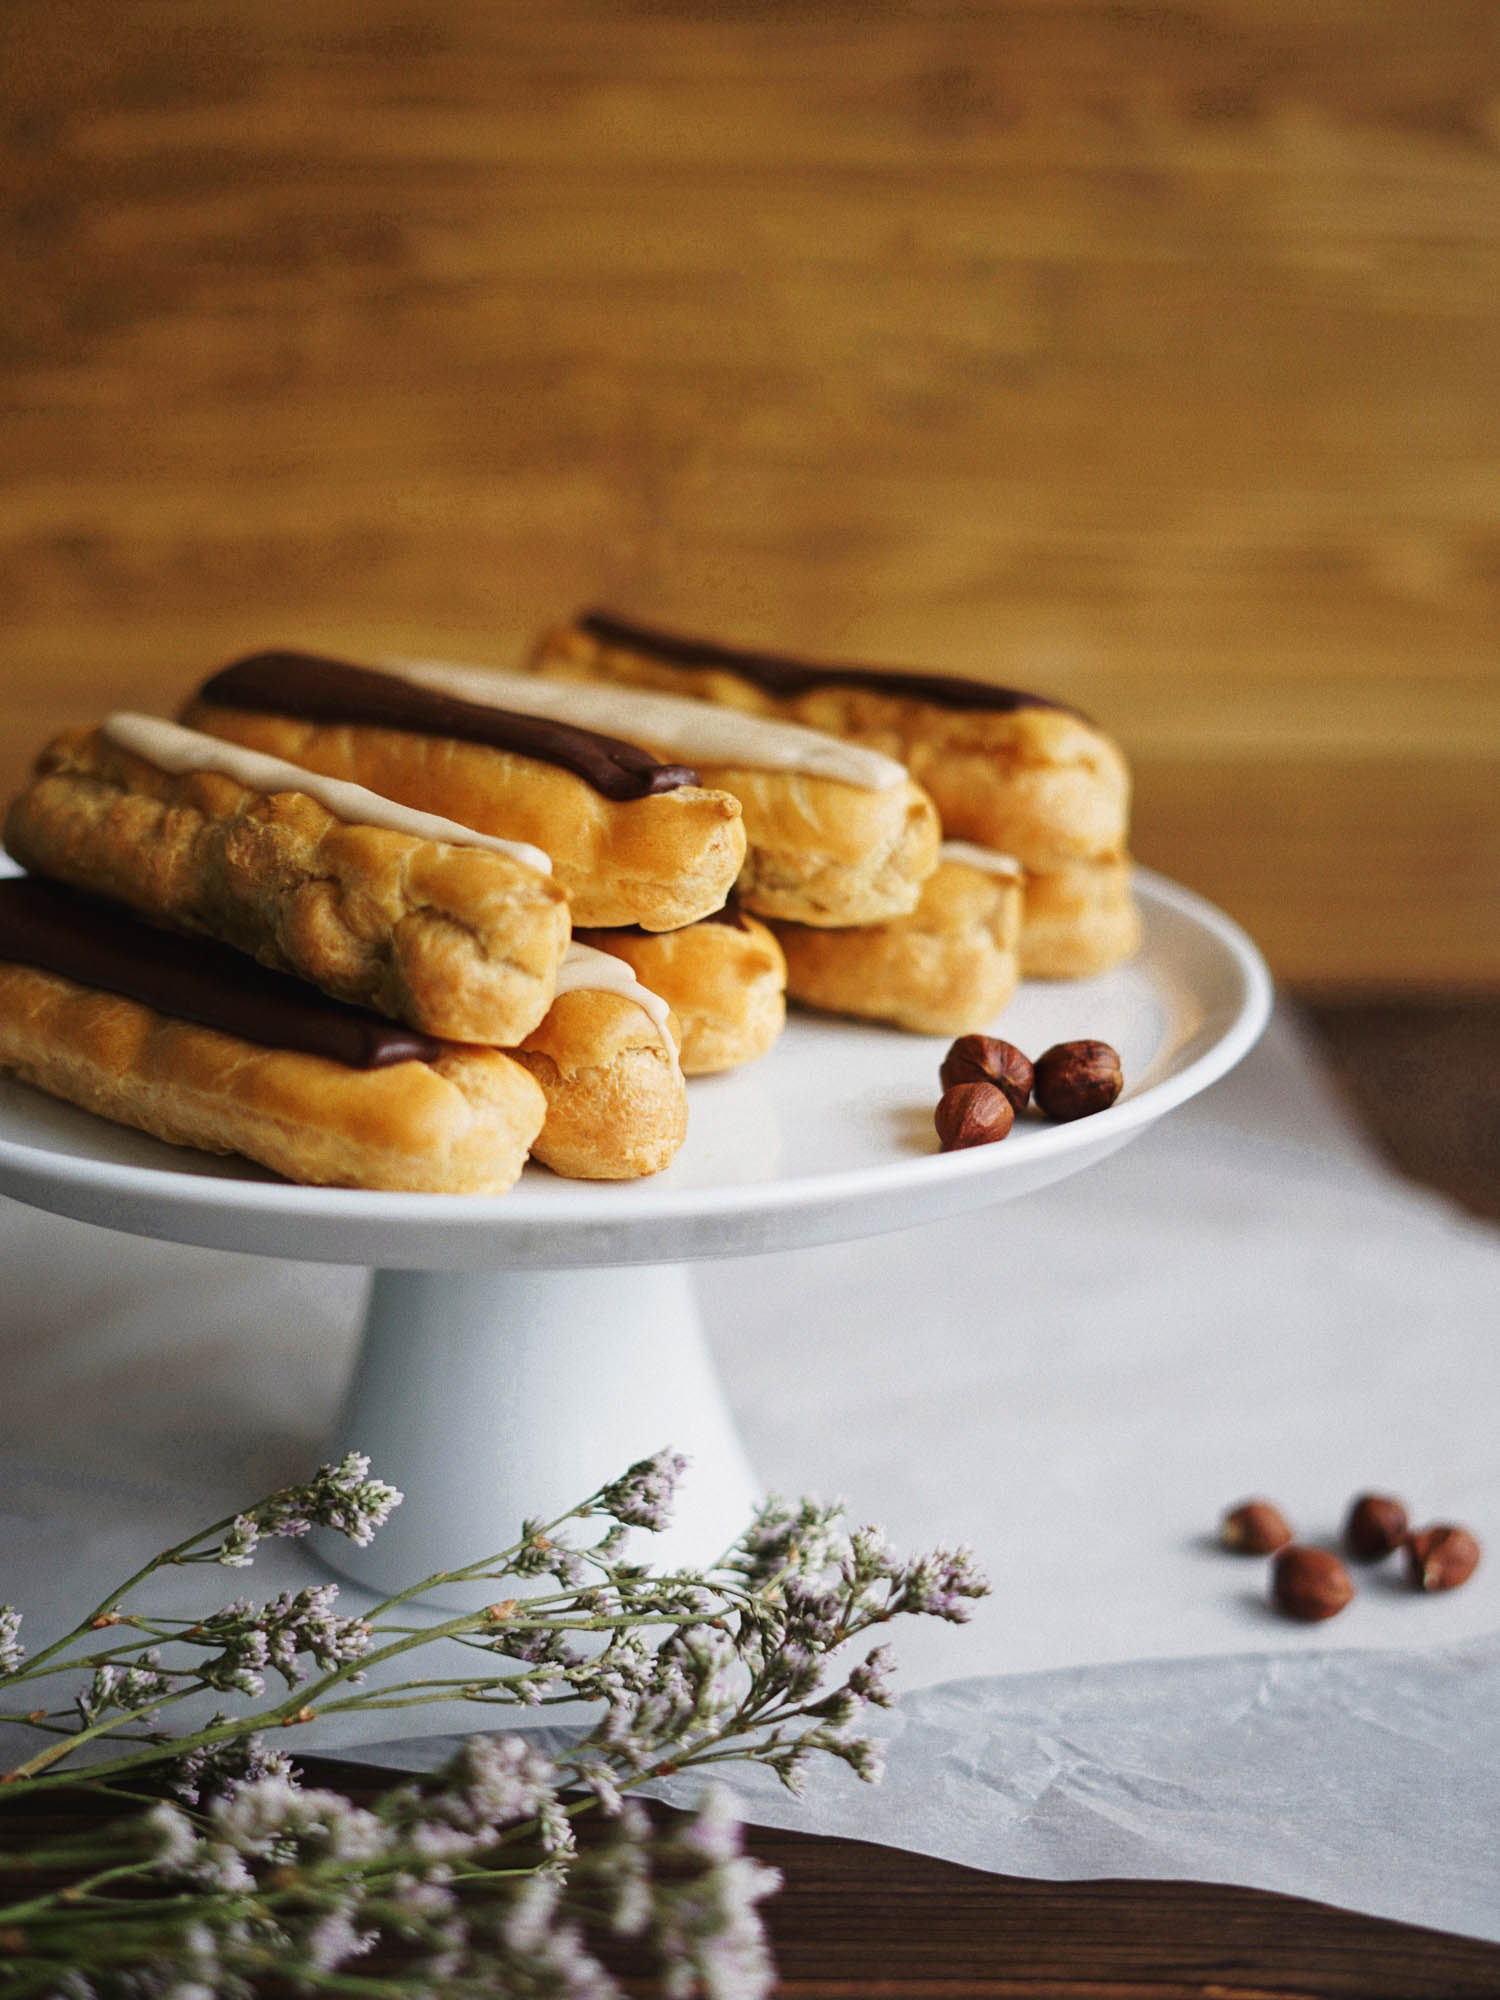 Classic French eclairs on a pastry stand.